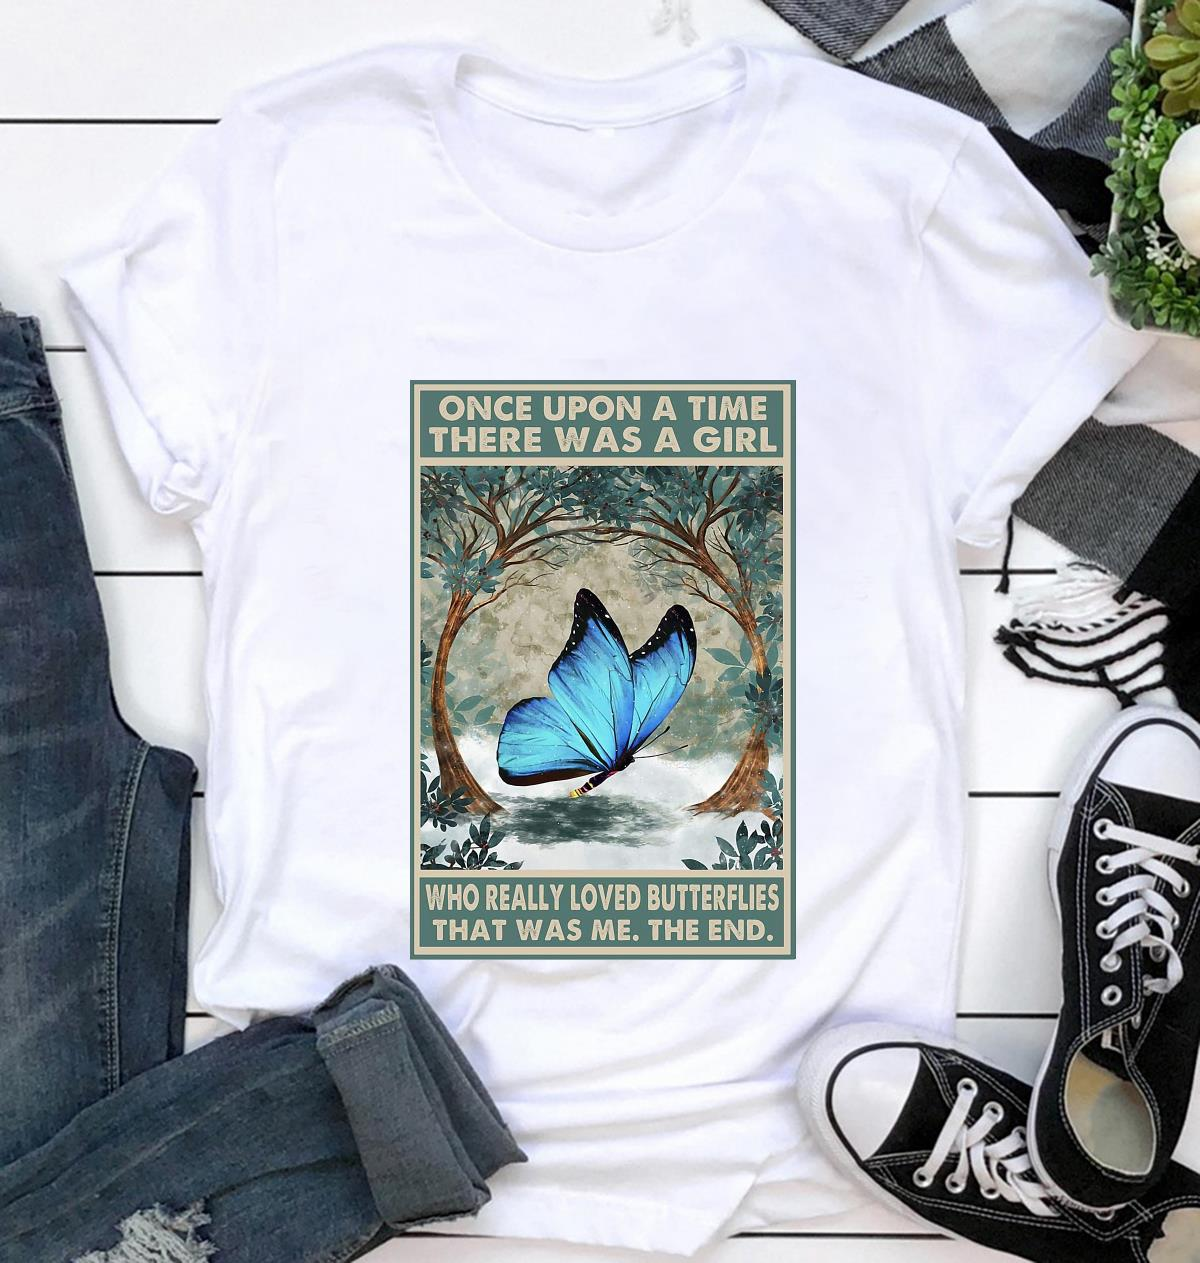 Once upon a time a girl who really loved Butterflies poster t-shirt